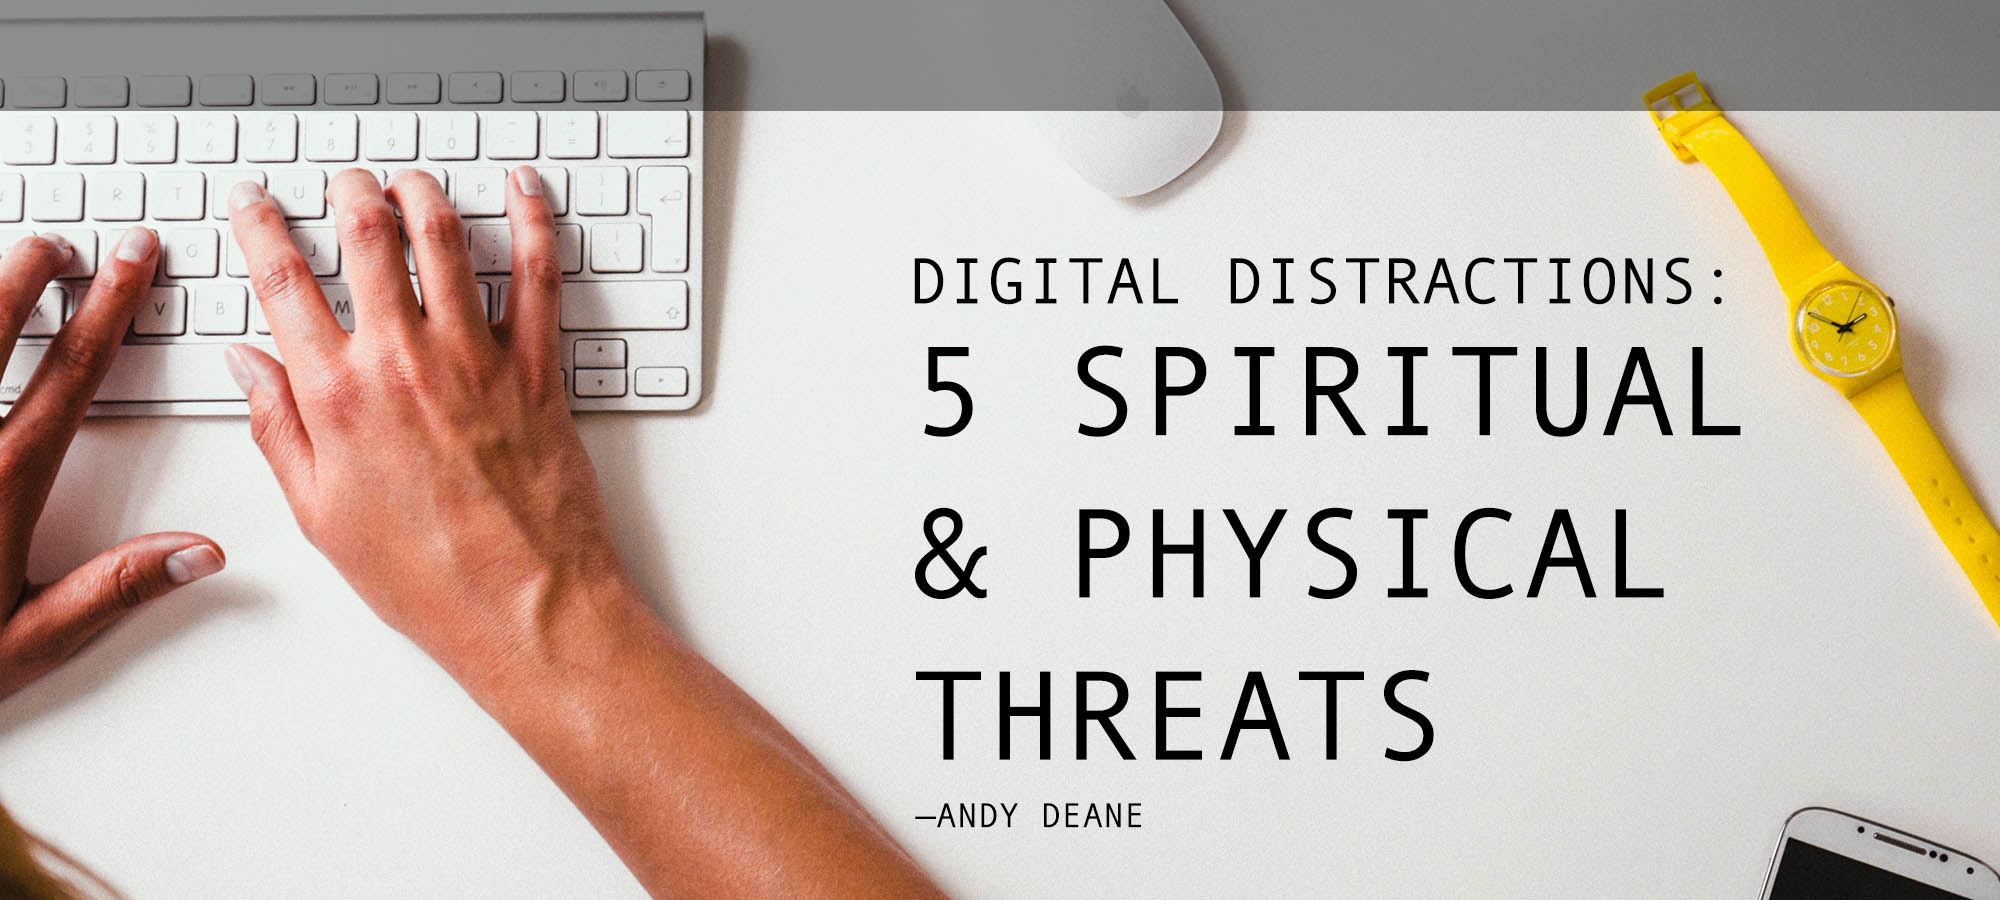 Digital Distractions: Five Spiritual & Physical Threats